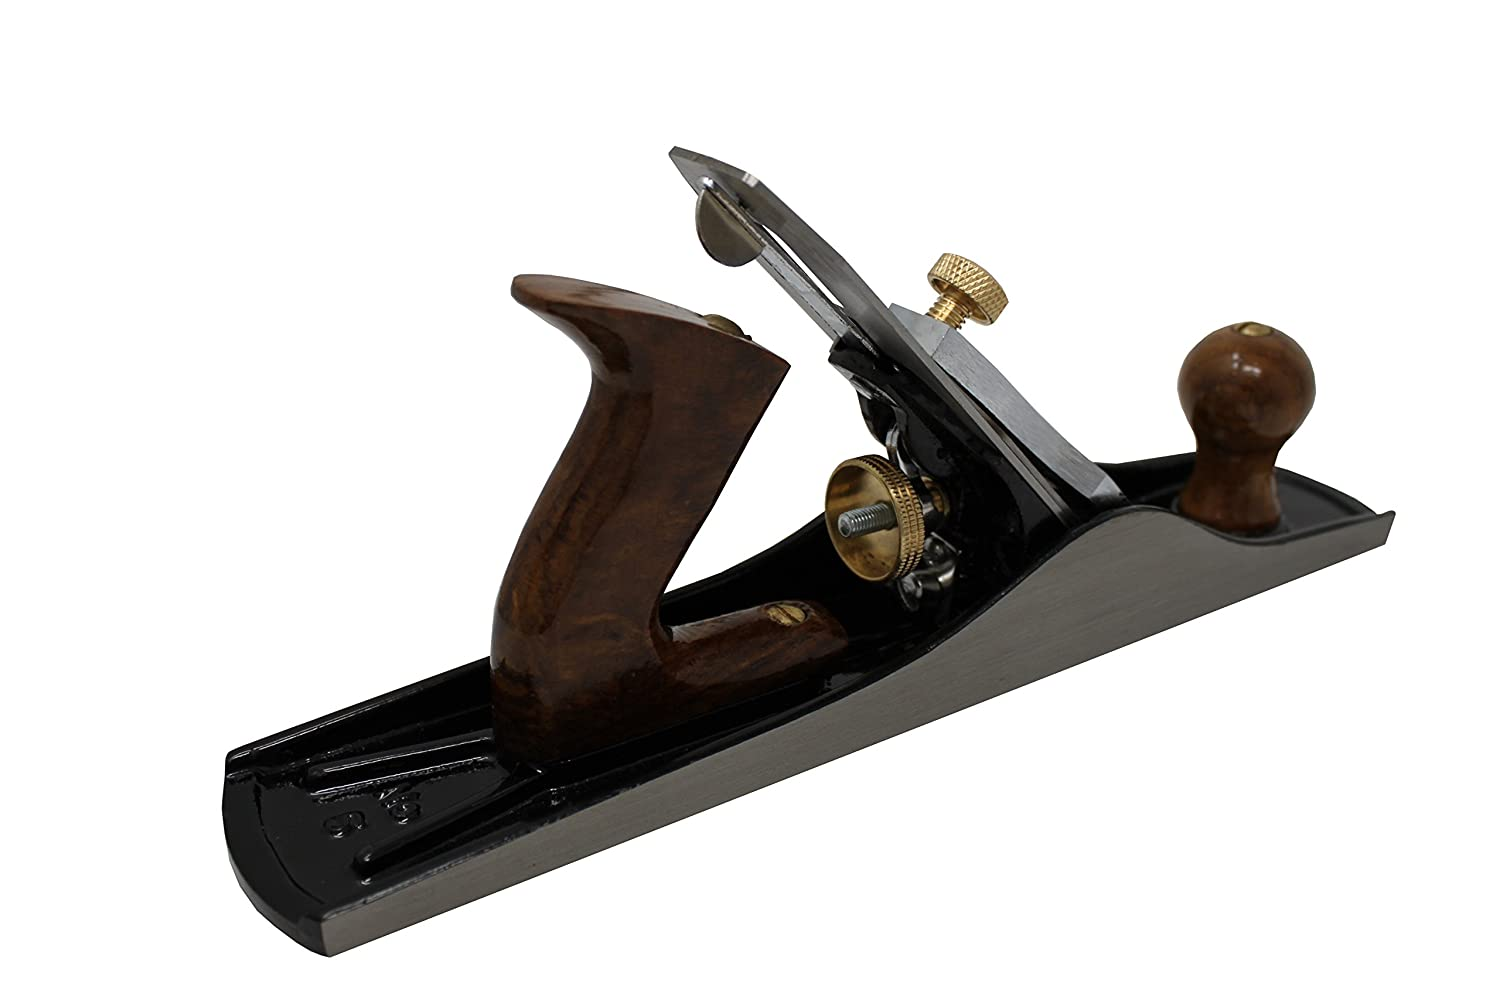 5 Fully Adjustable Wood Hand Planer Iron Jack Plane Bench Plane No Includes 2 blades 14-Inches Long with 2-Inch Cutter